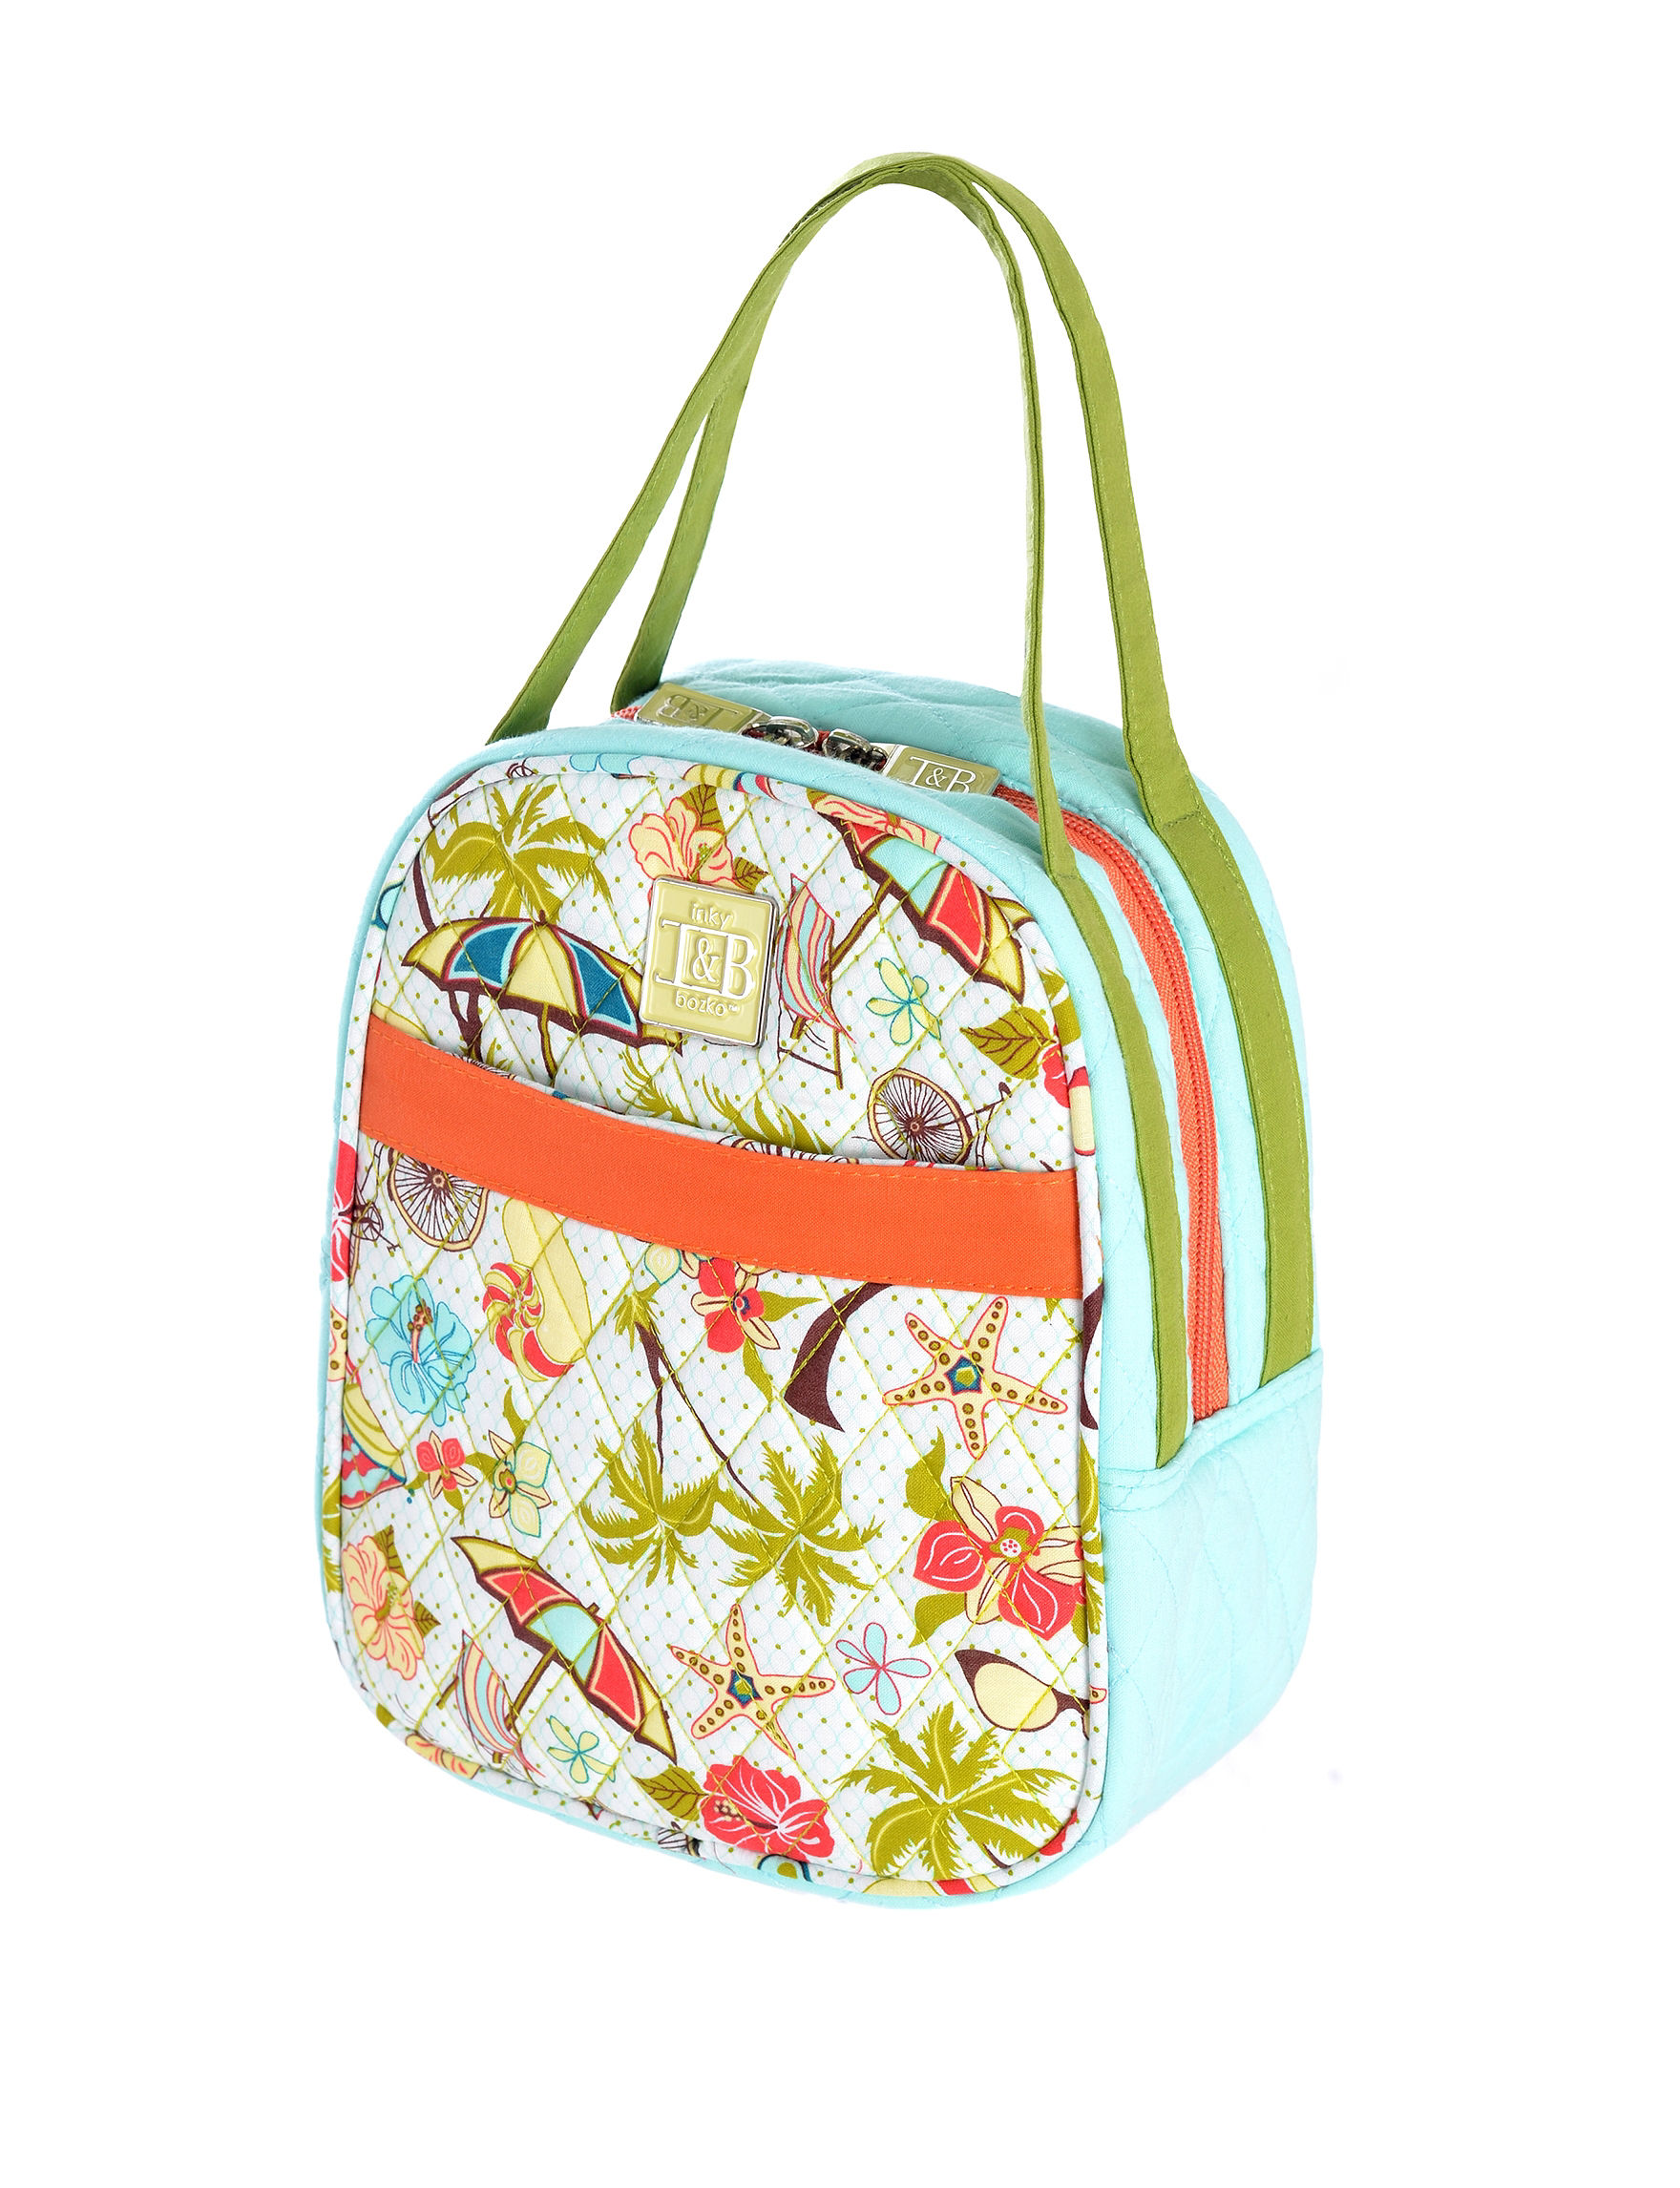 Inky & Bozko Blue / Green Lunch Boxes & Bags Weekend Bags